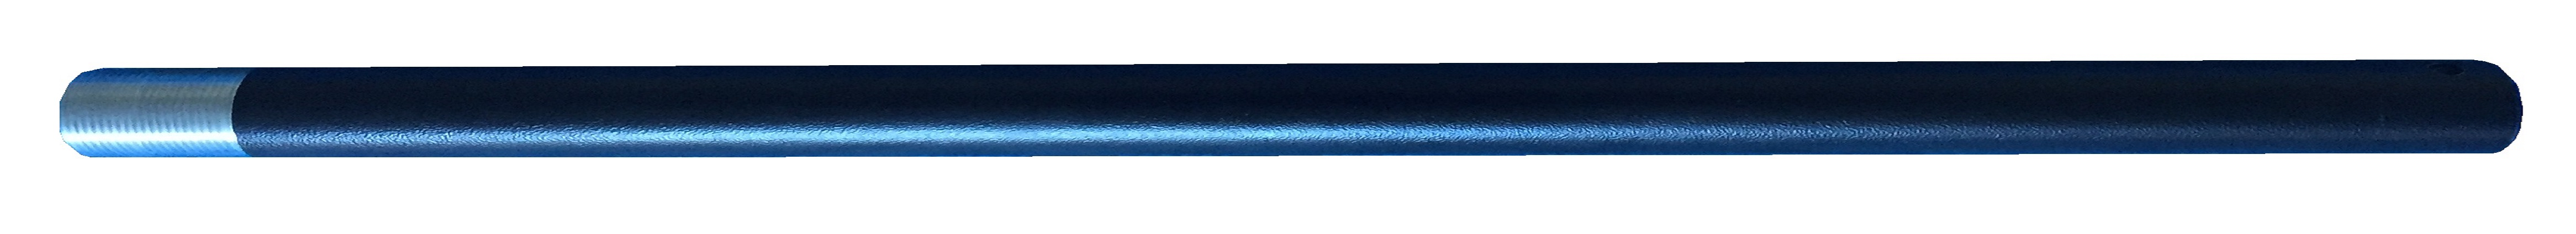 600mm Extension Pole